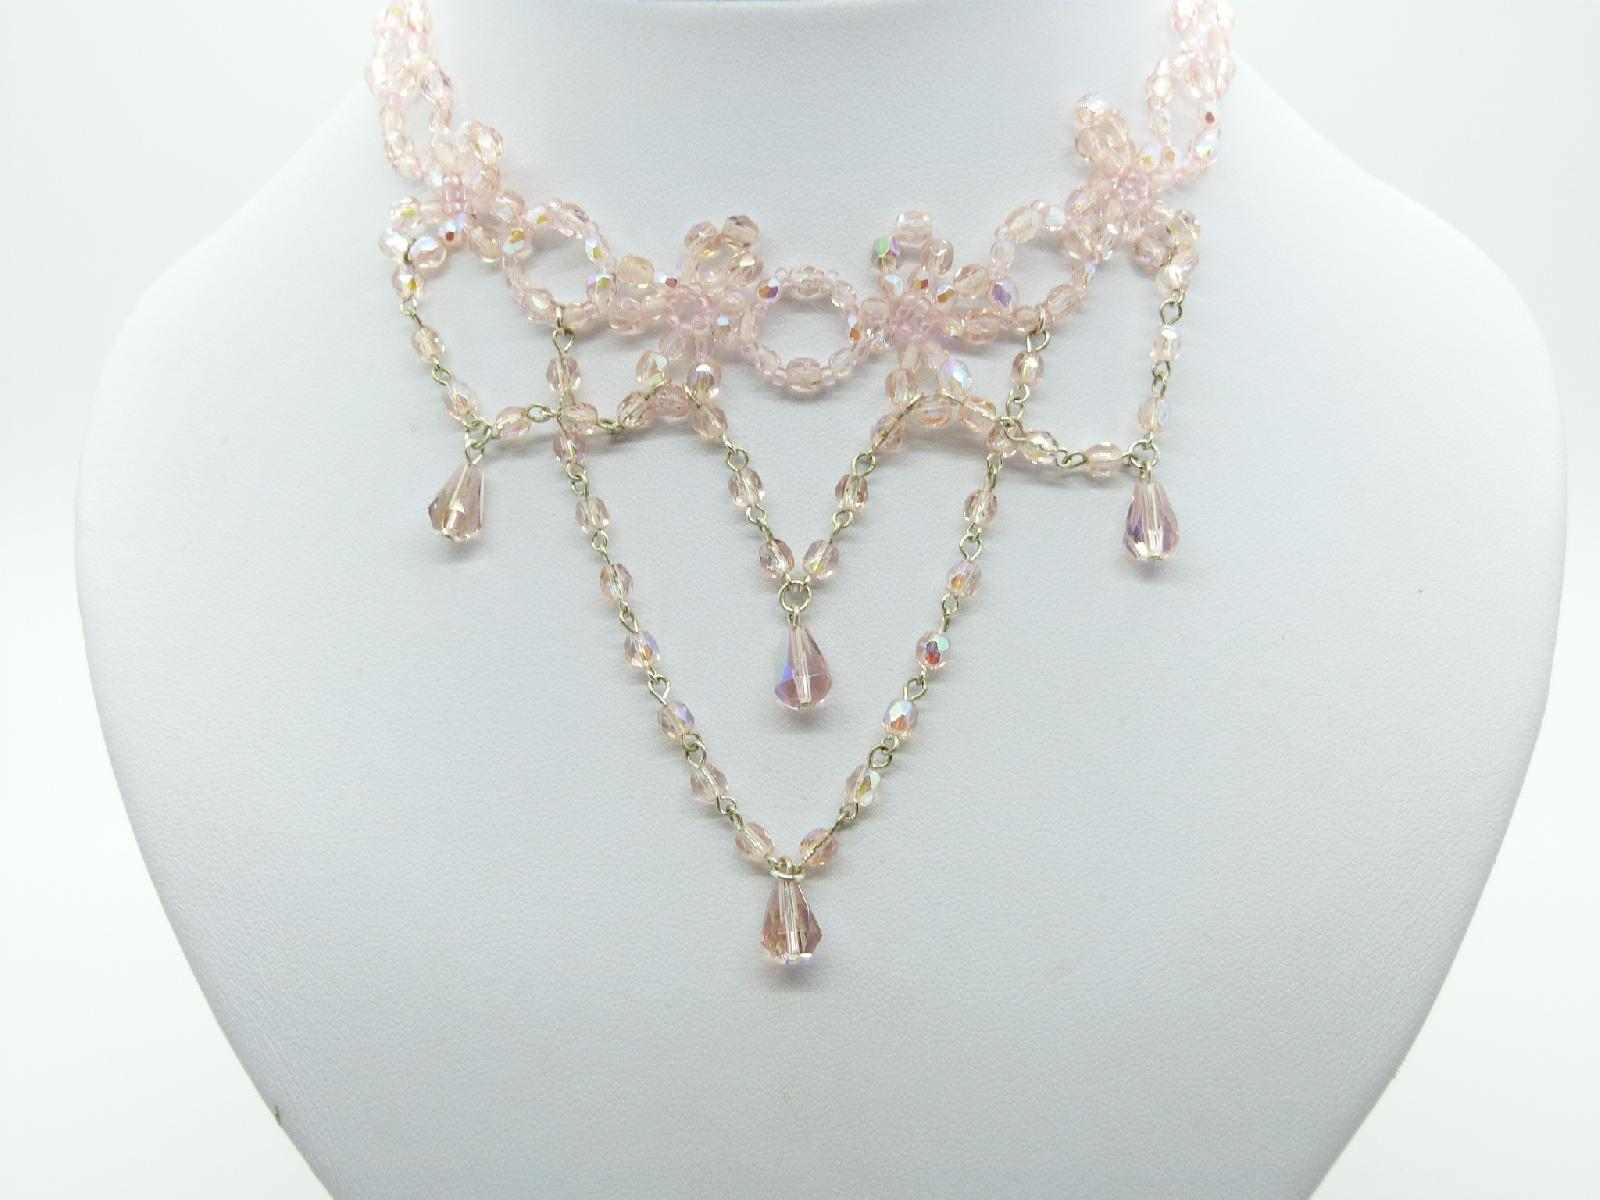 £10.00 - Vintage Style Pretty Pink AB Glass Bead Festoon Drop Choker Necklace